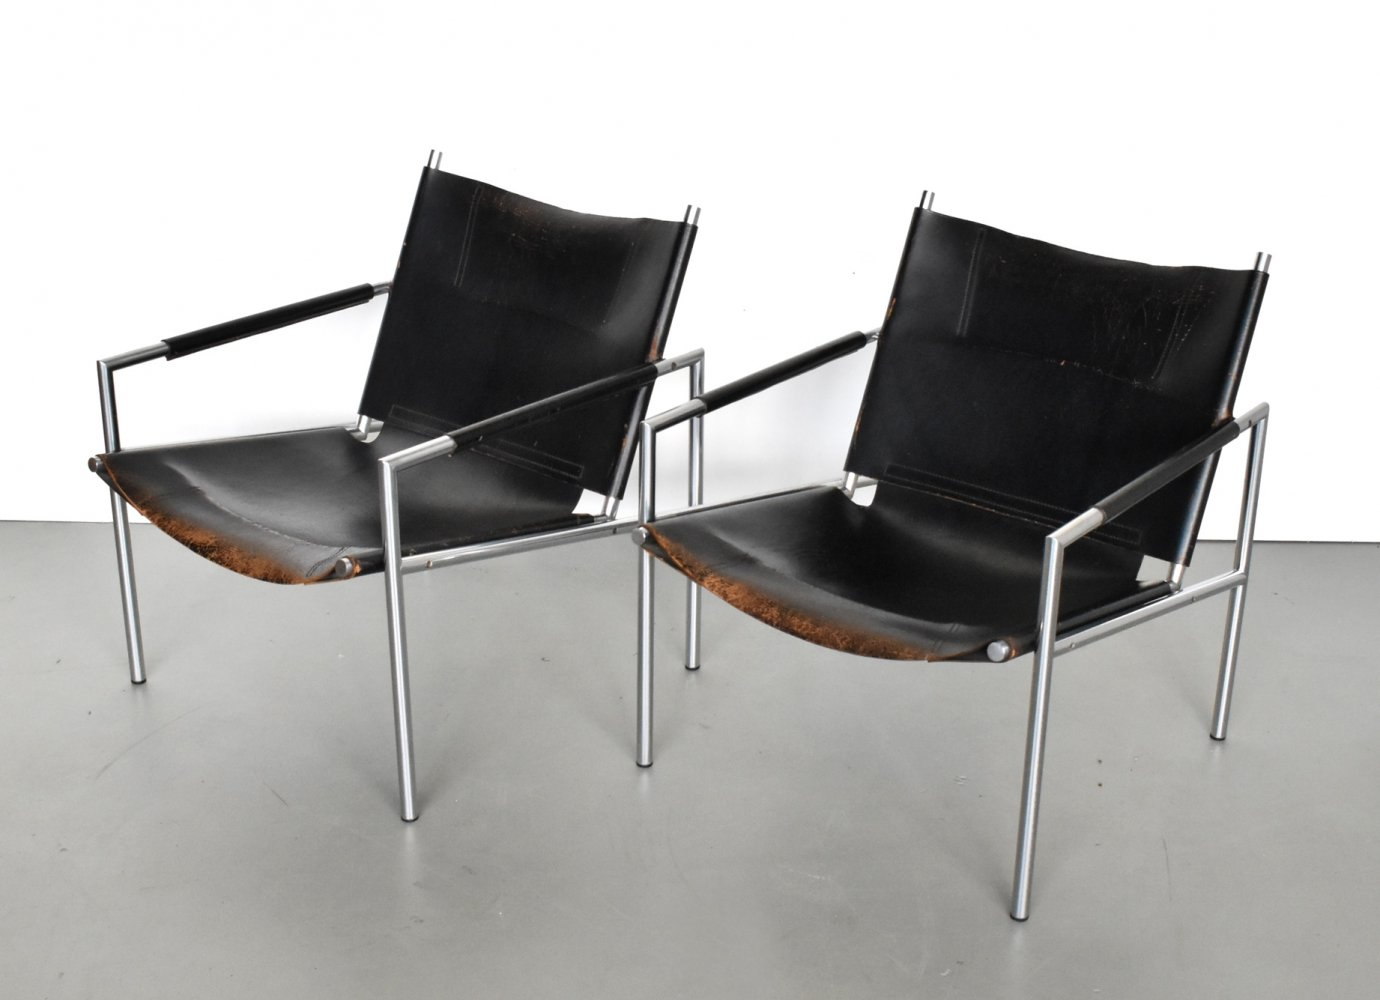 Pair of SZ02 lounge chairs by Martin Visser for Spectrum, 1960s